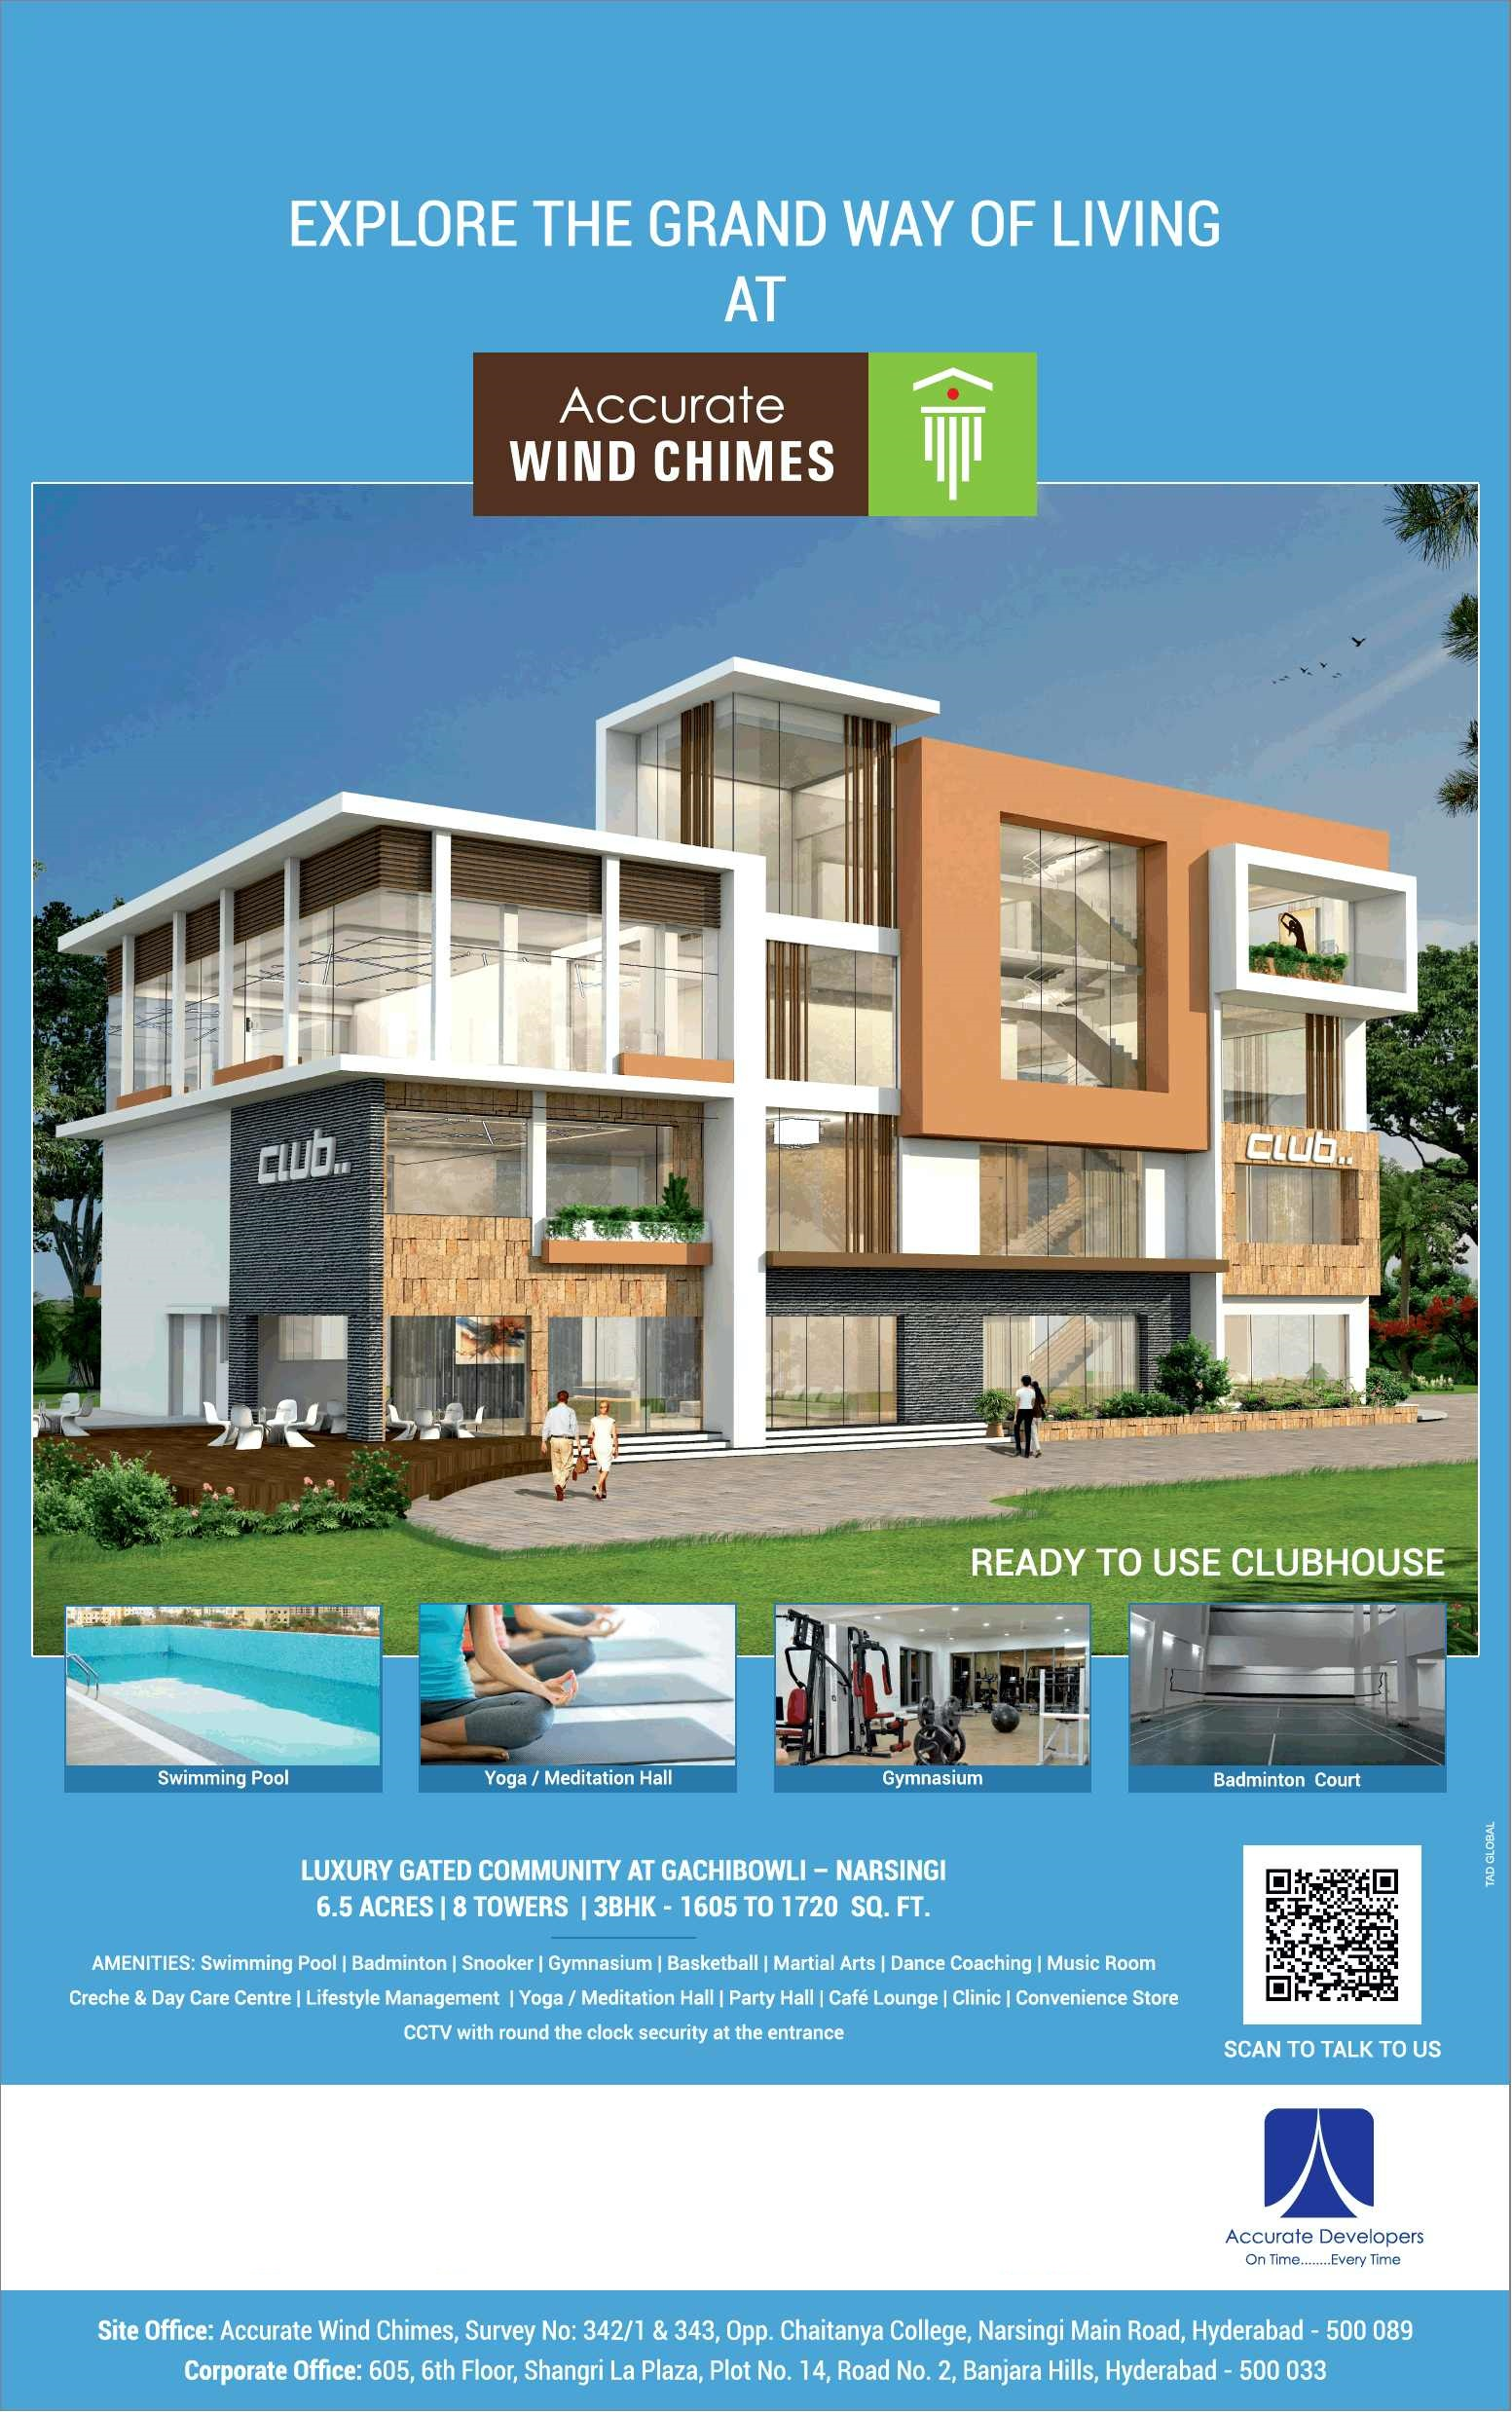 Avail luxury gated community at Accurate Wind Chimes in Gachibowli Hyderabad